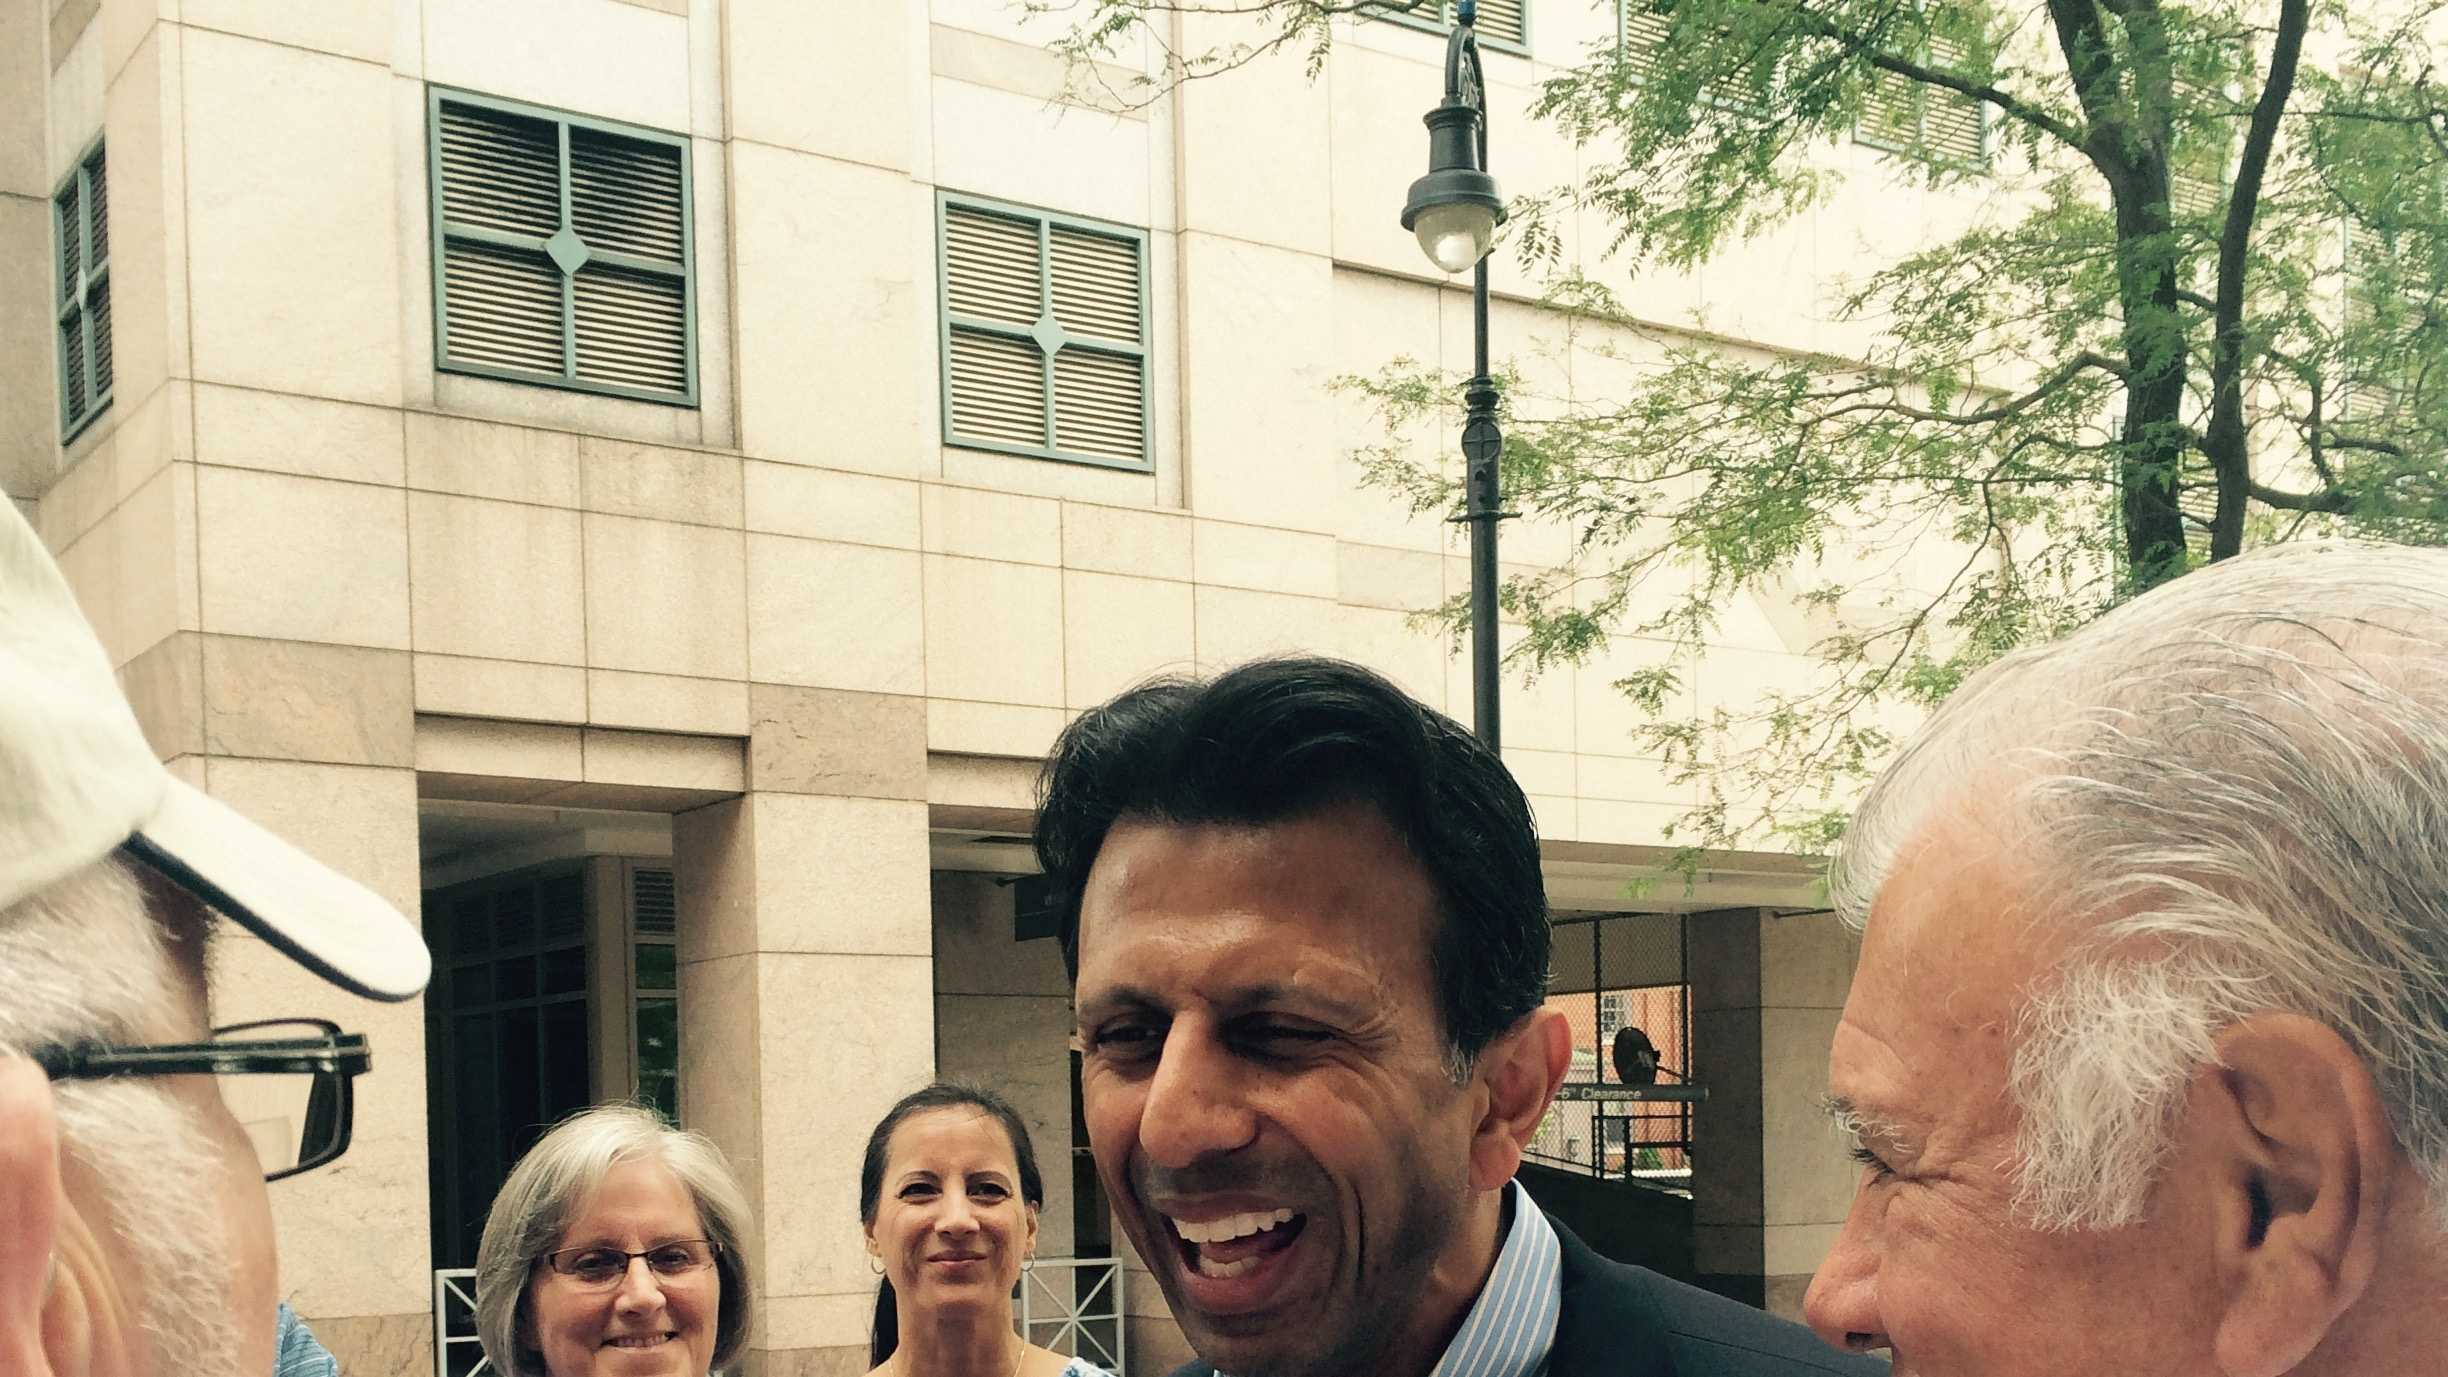 Louisiana Gov. Bobby Jindal speaks to Granite Staters in downtown Manchester with Mayor Ted Gatsas Monday, July 6. (John DiStaso/WMUR)